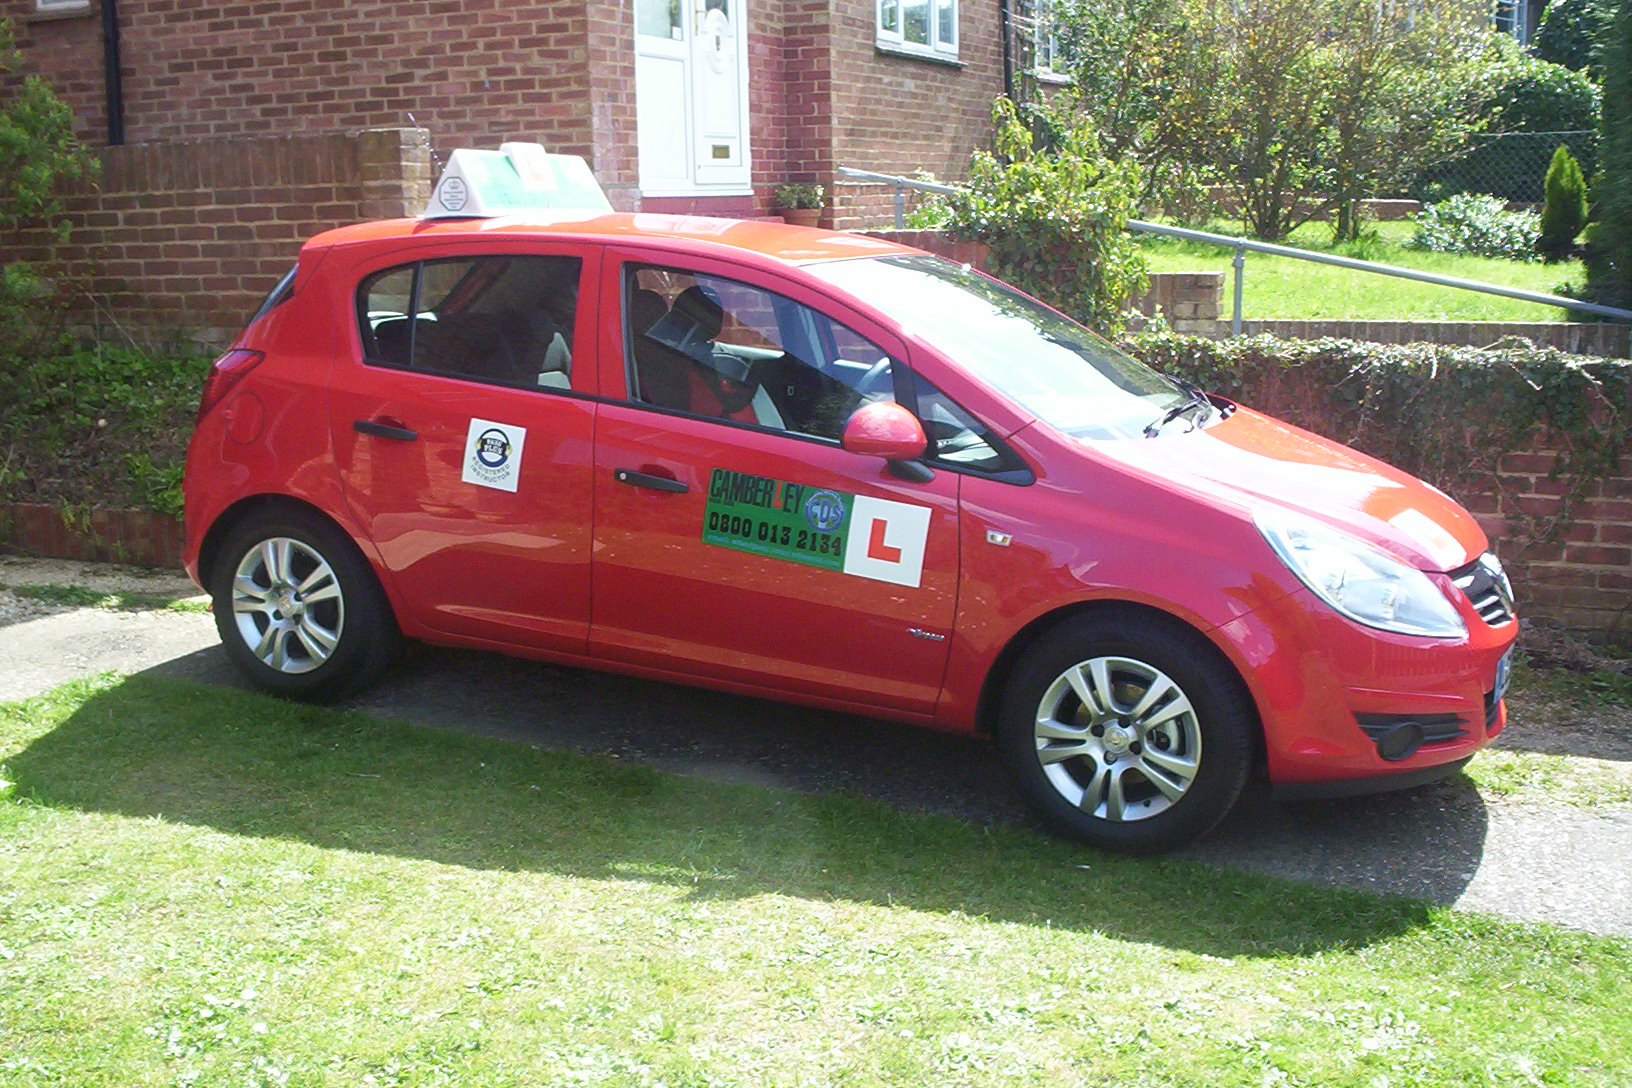 Camberley Driving School Vehicle